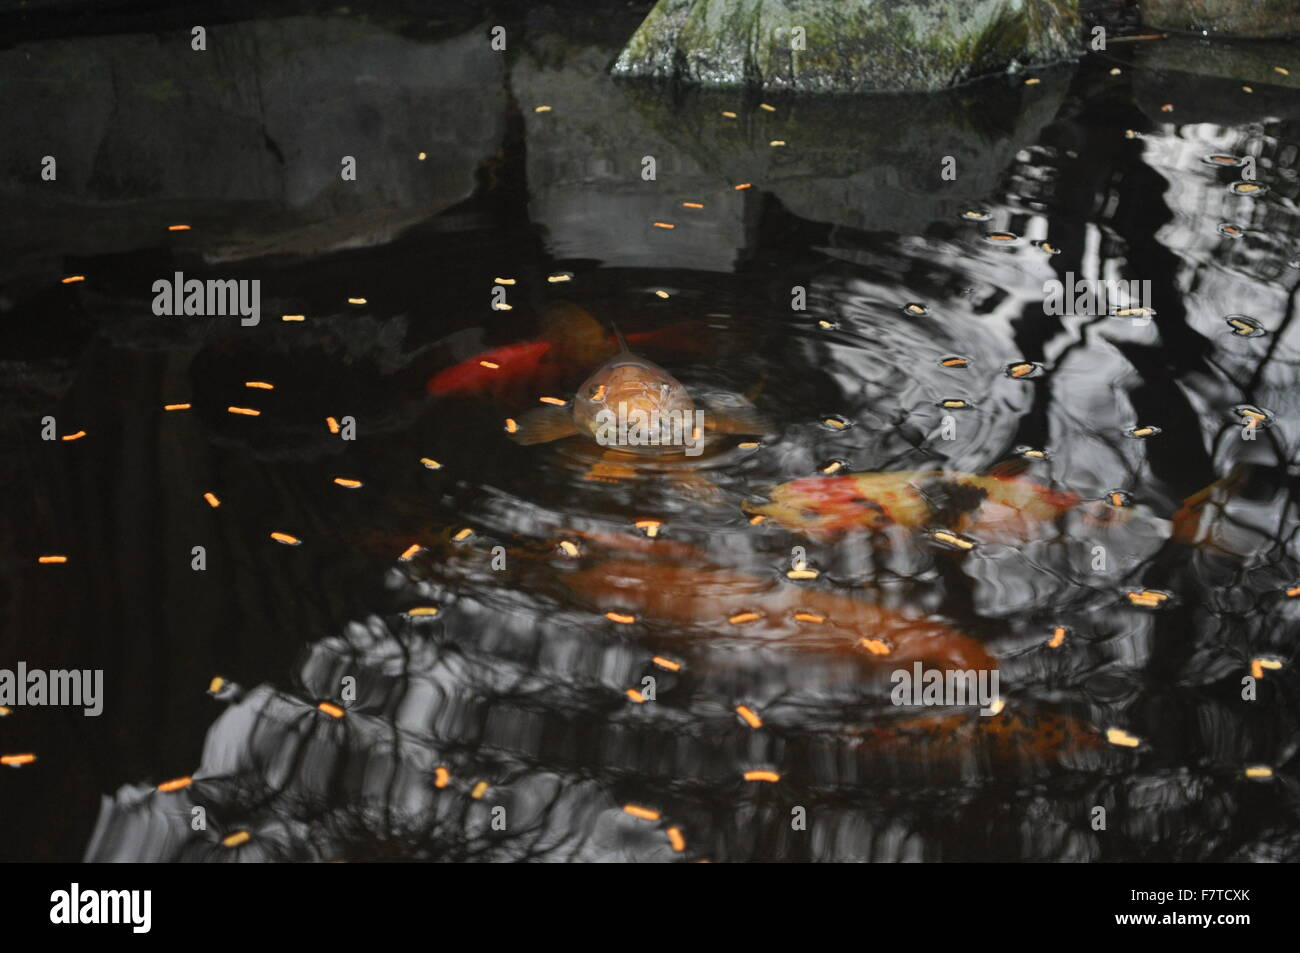 A group of Koi karp in a pond layed with fish food - Stock Image